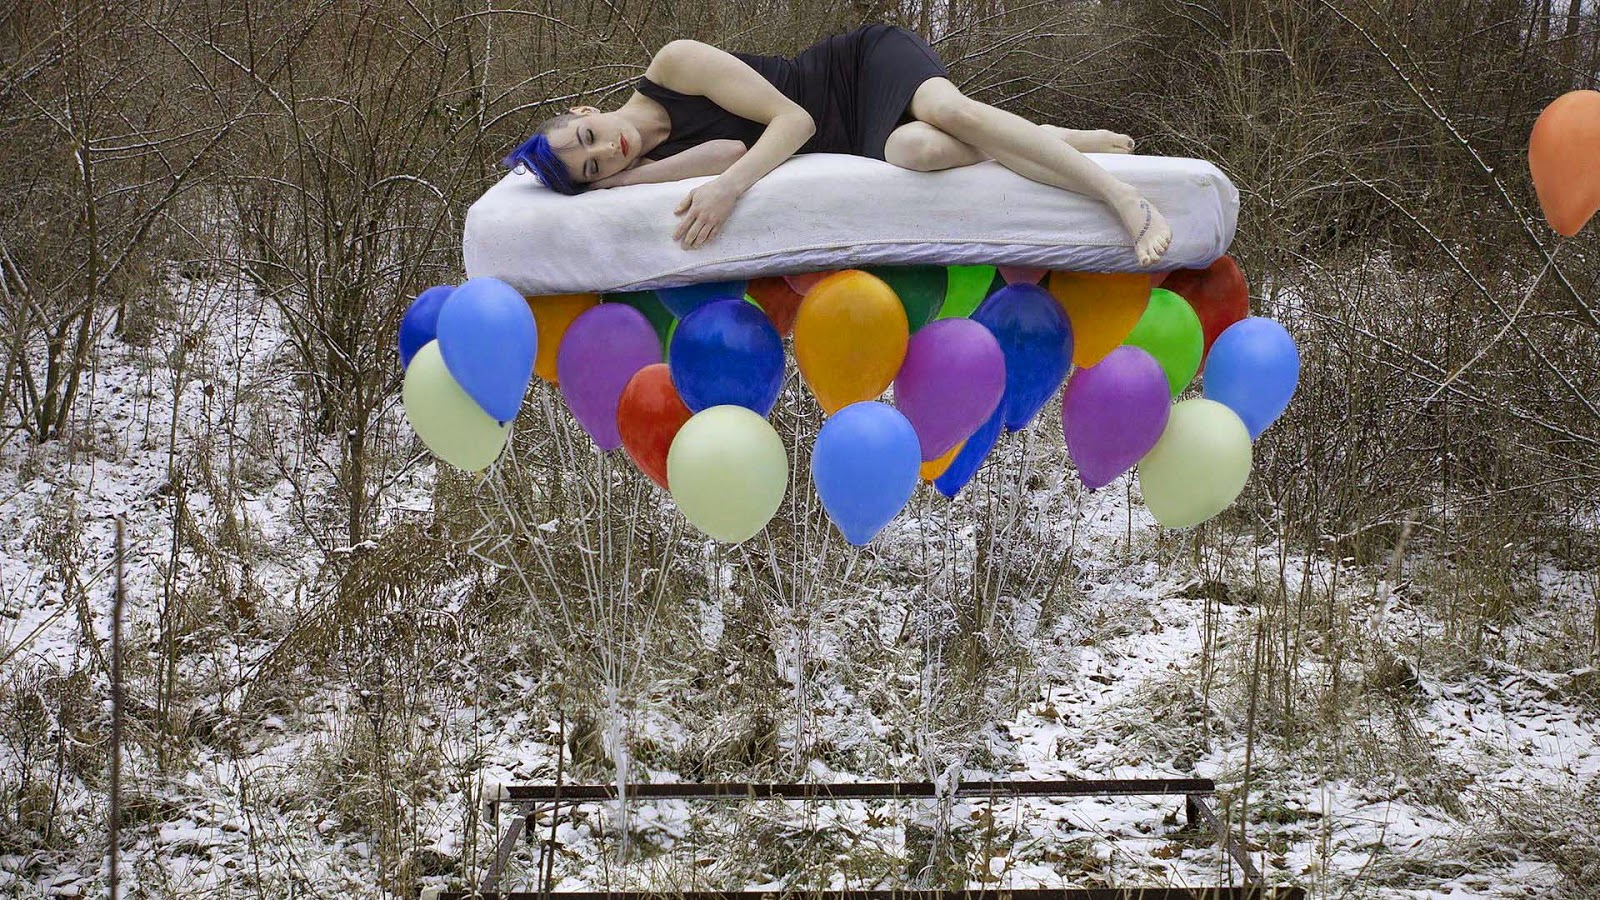 model-floating-on-the-balloons-good-night